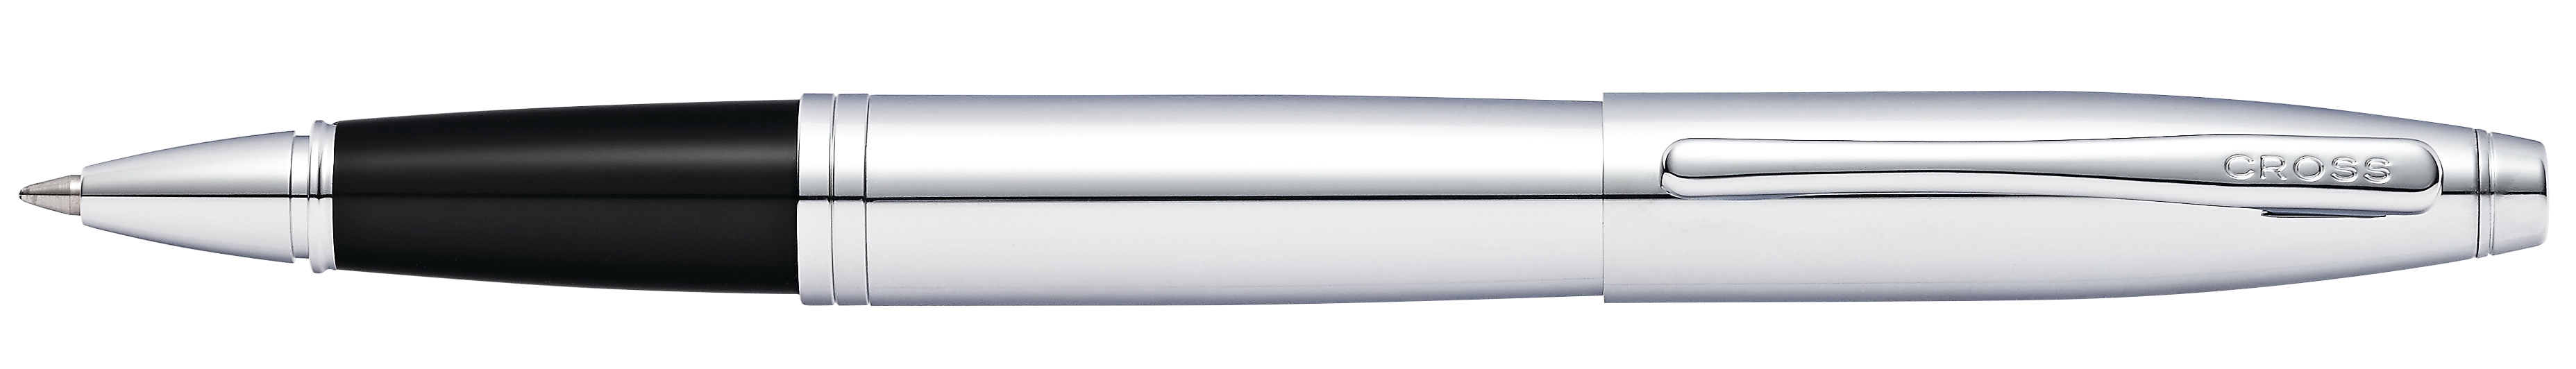 Calais Polished Chrome Rollerball Pen - self-server packaging